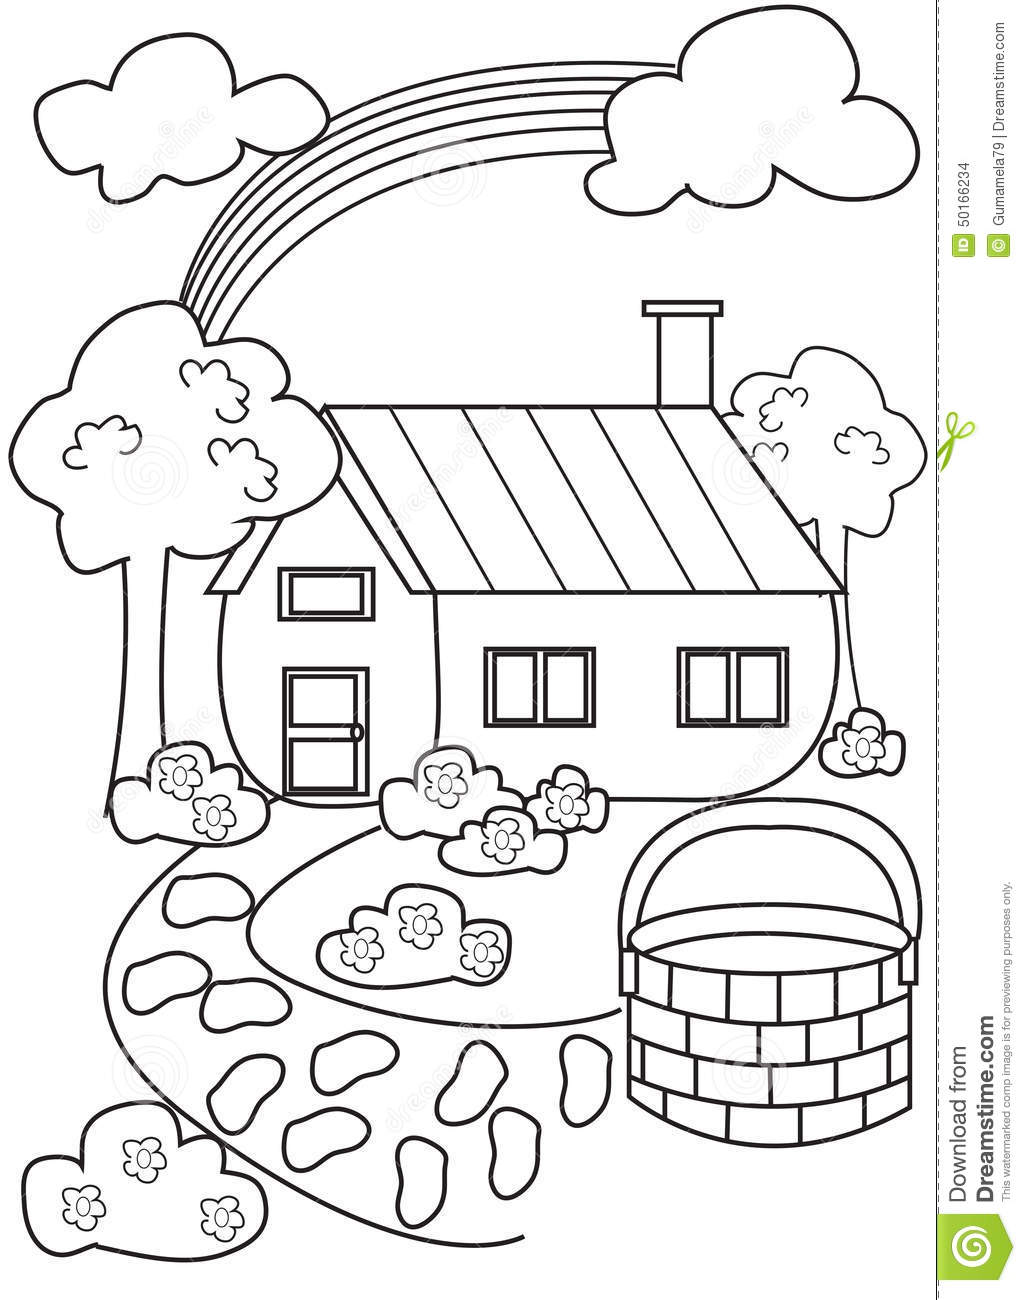 House Coloring Page Stock Illustration Image Of Artwork